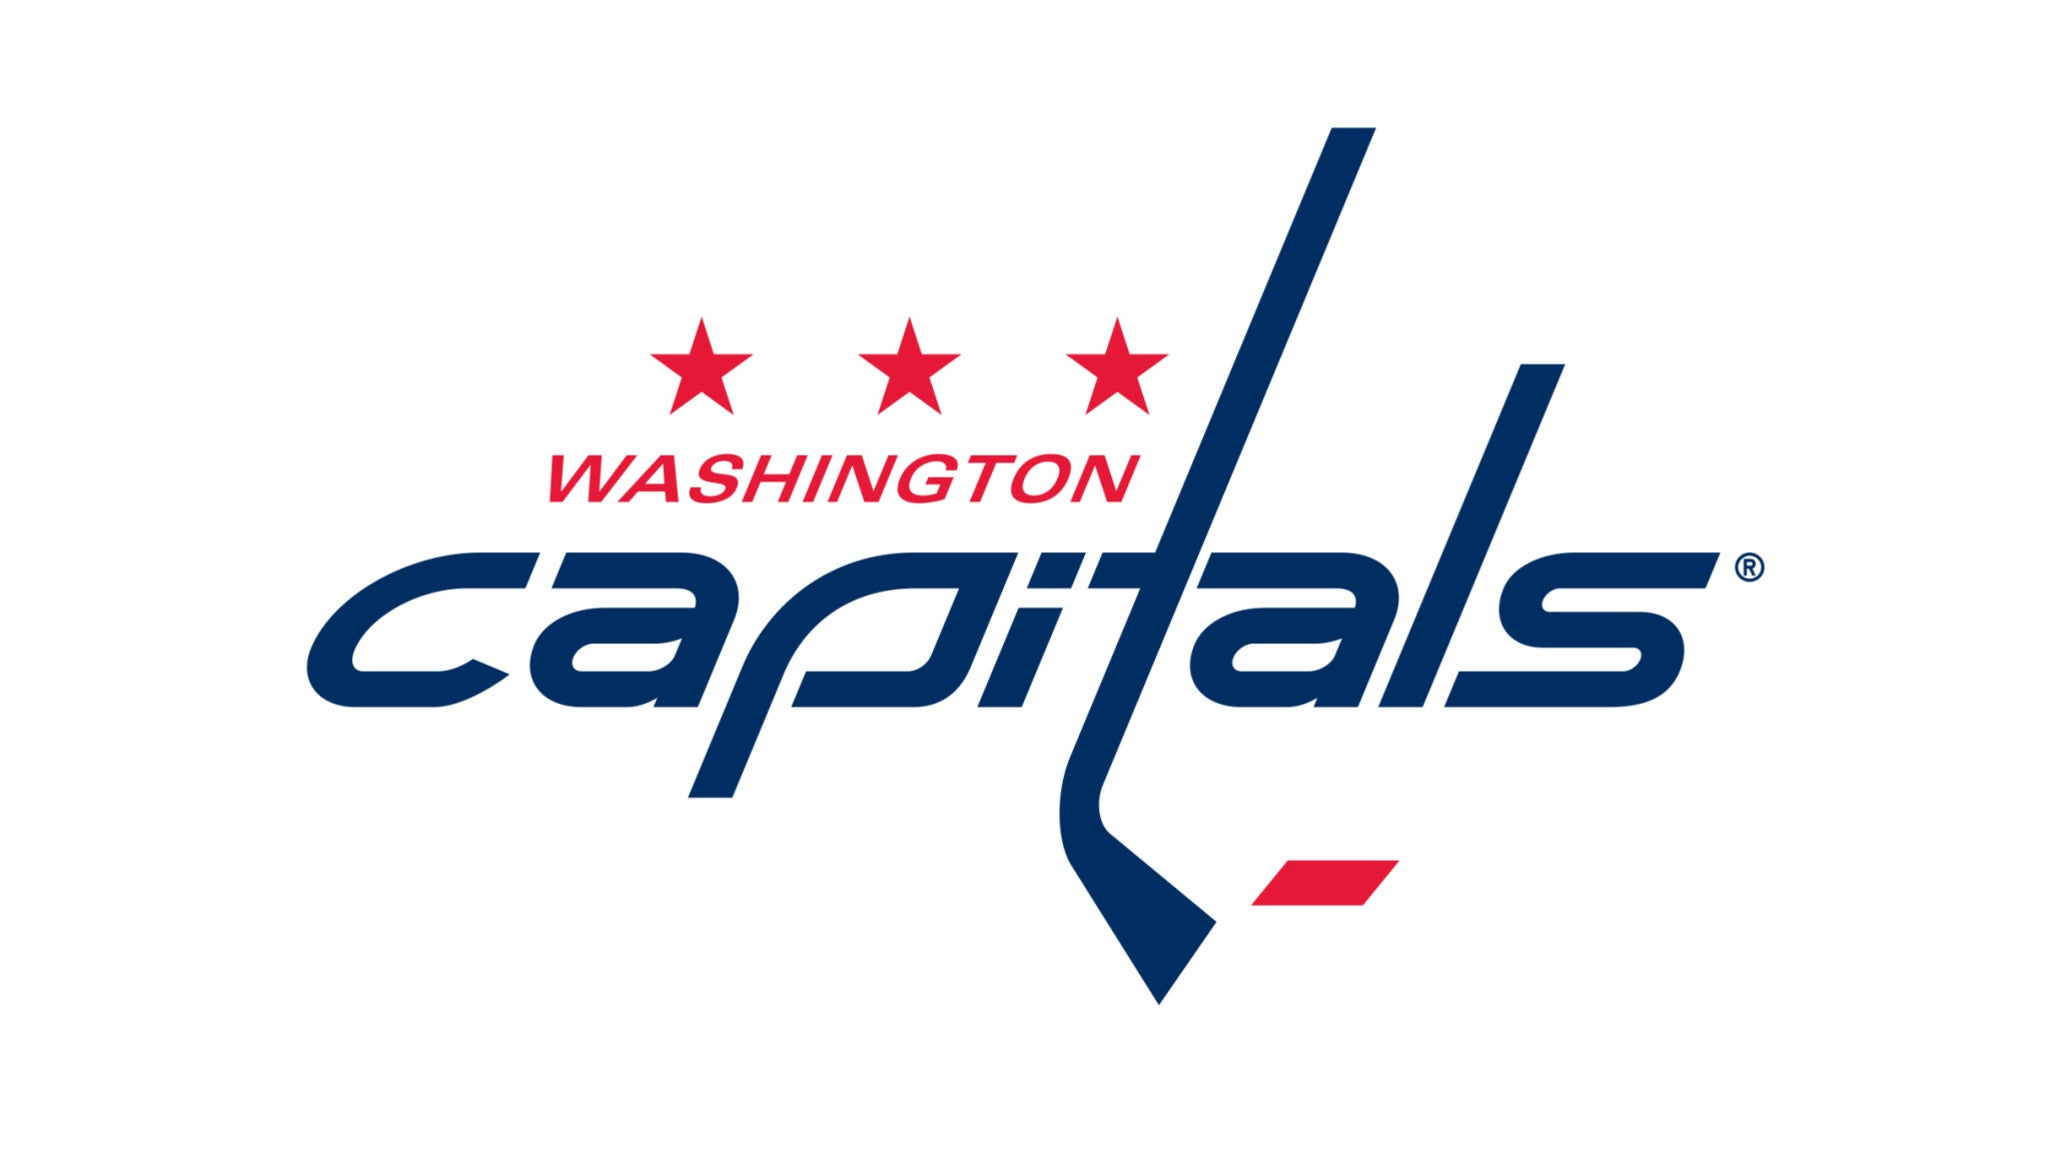 Washington Capitals vs. New York Rangers - Washington, DC 20004